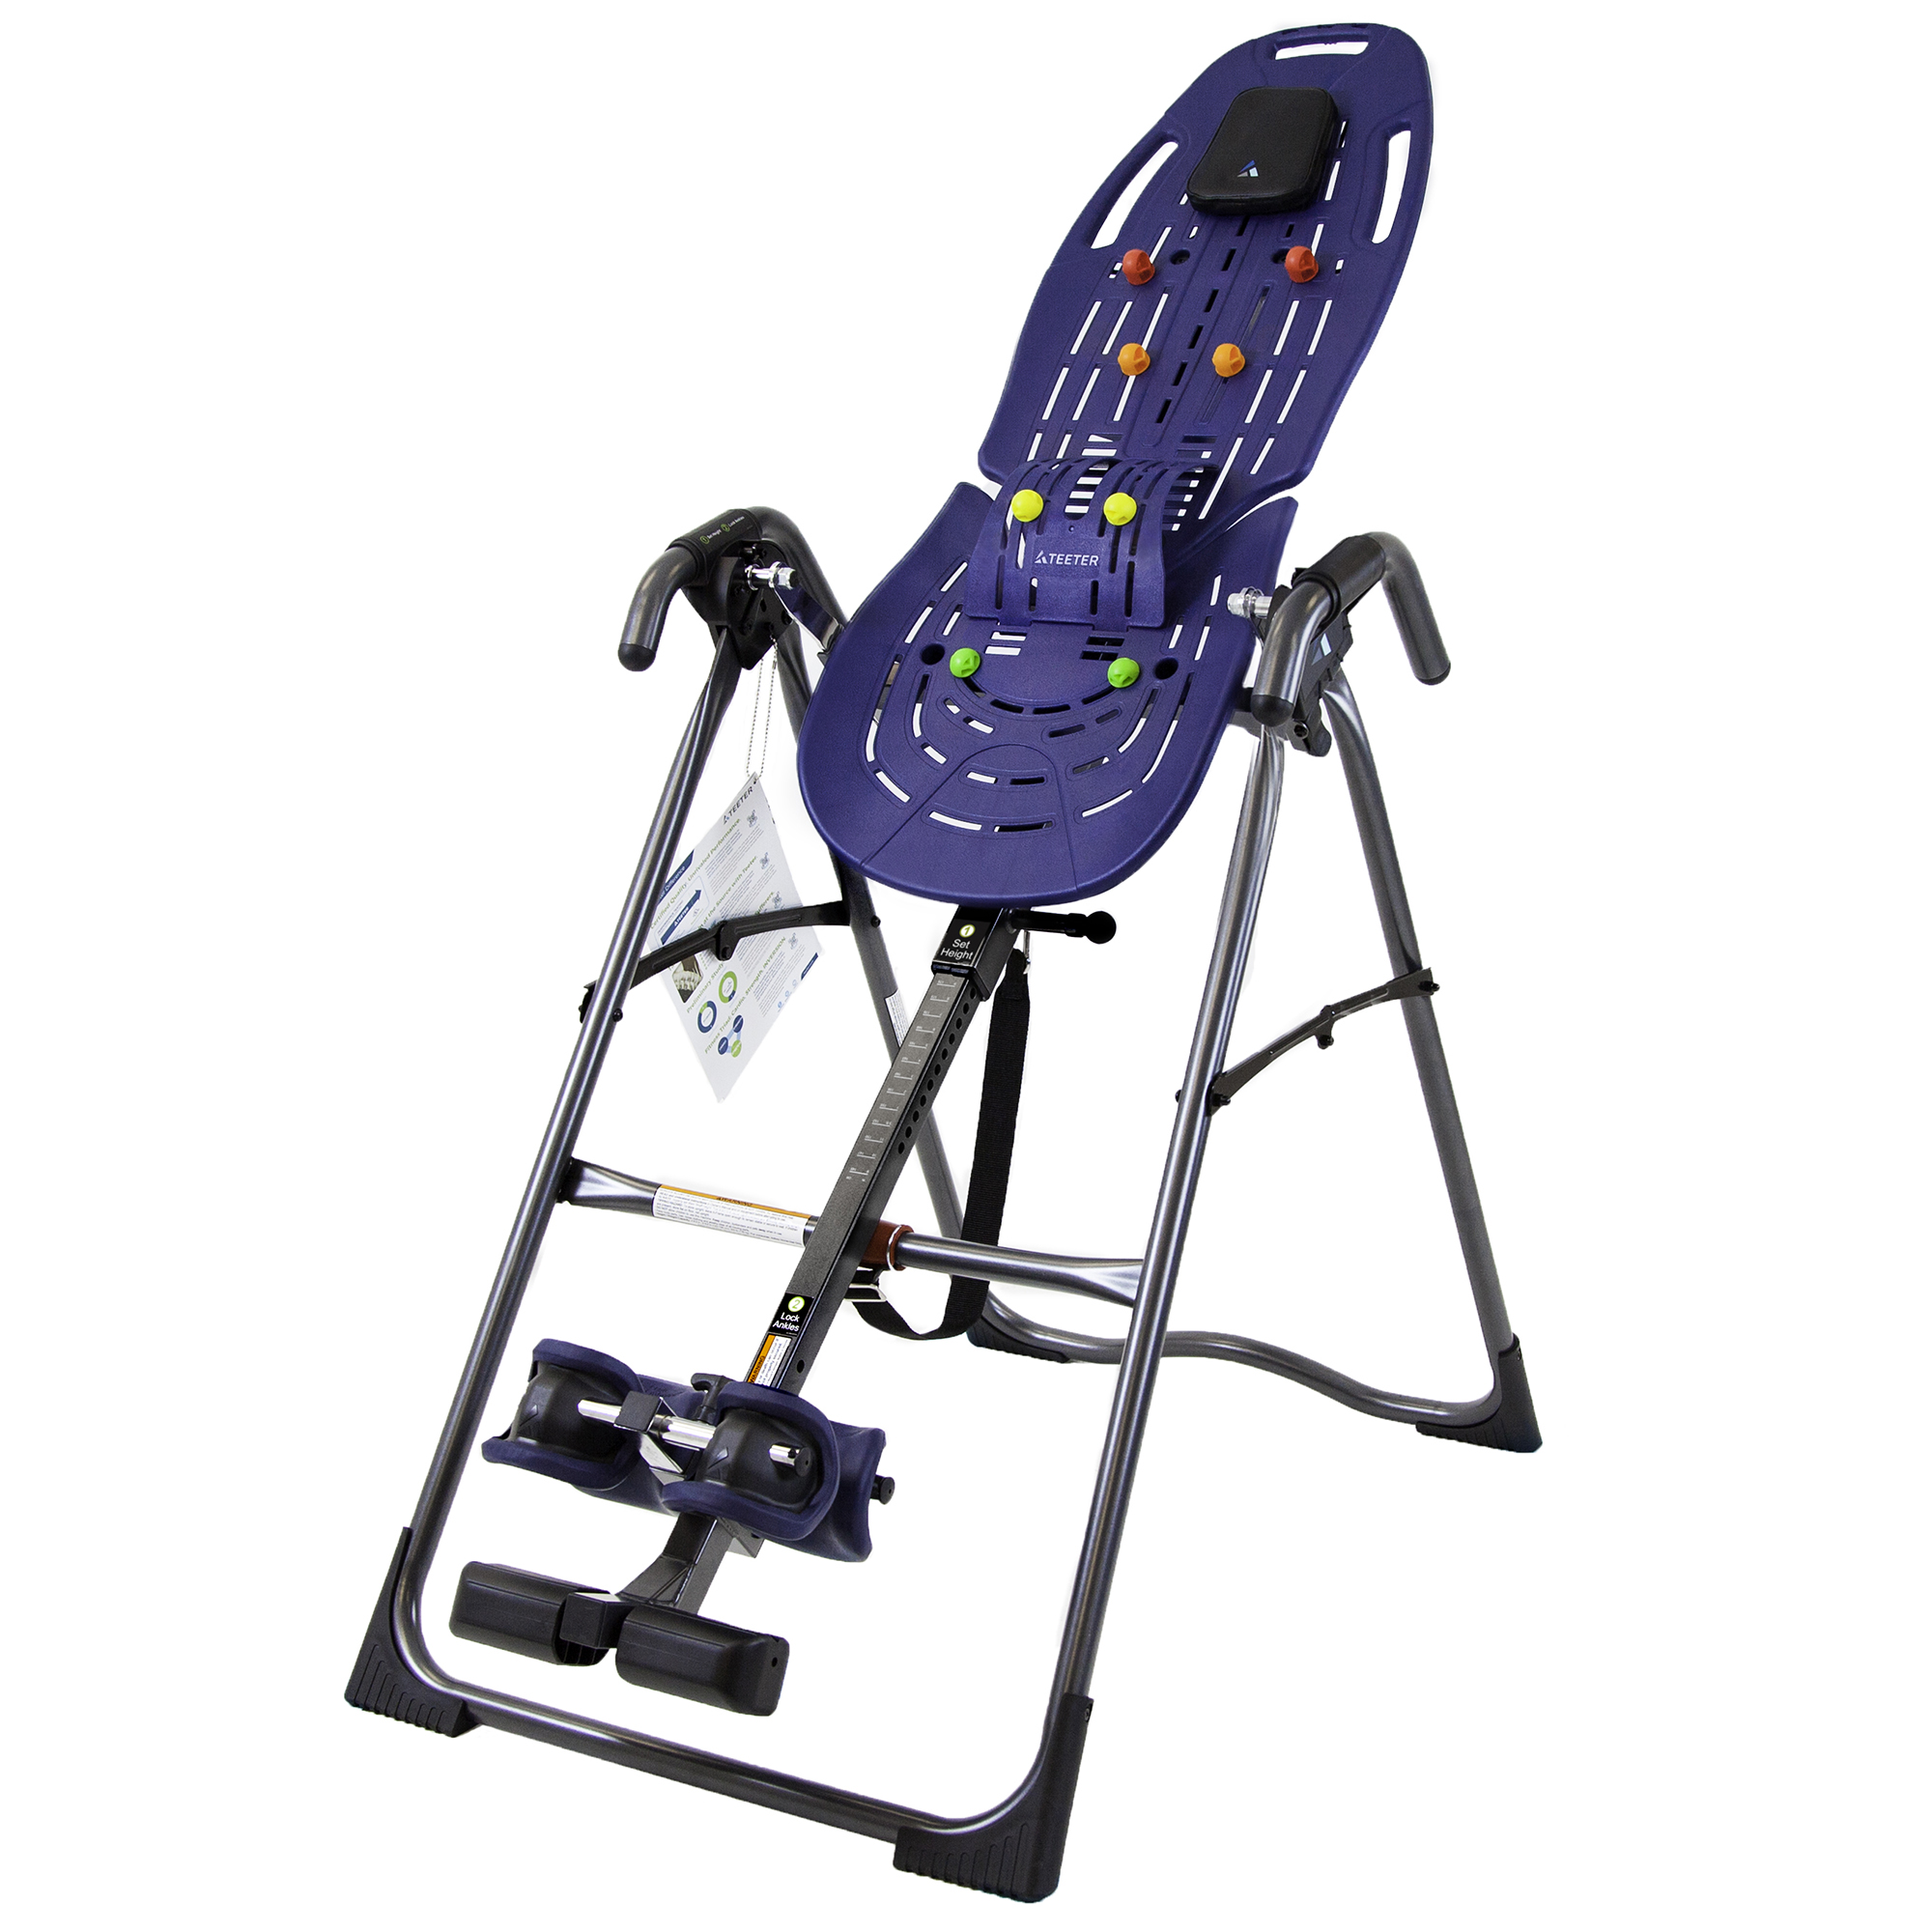 Teeter hang Ups EP-560 Ltd Inversion Table w/Acupressure ...